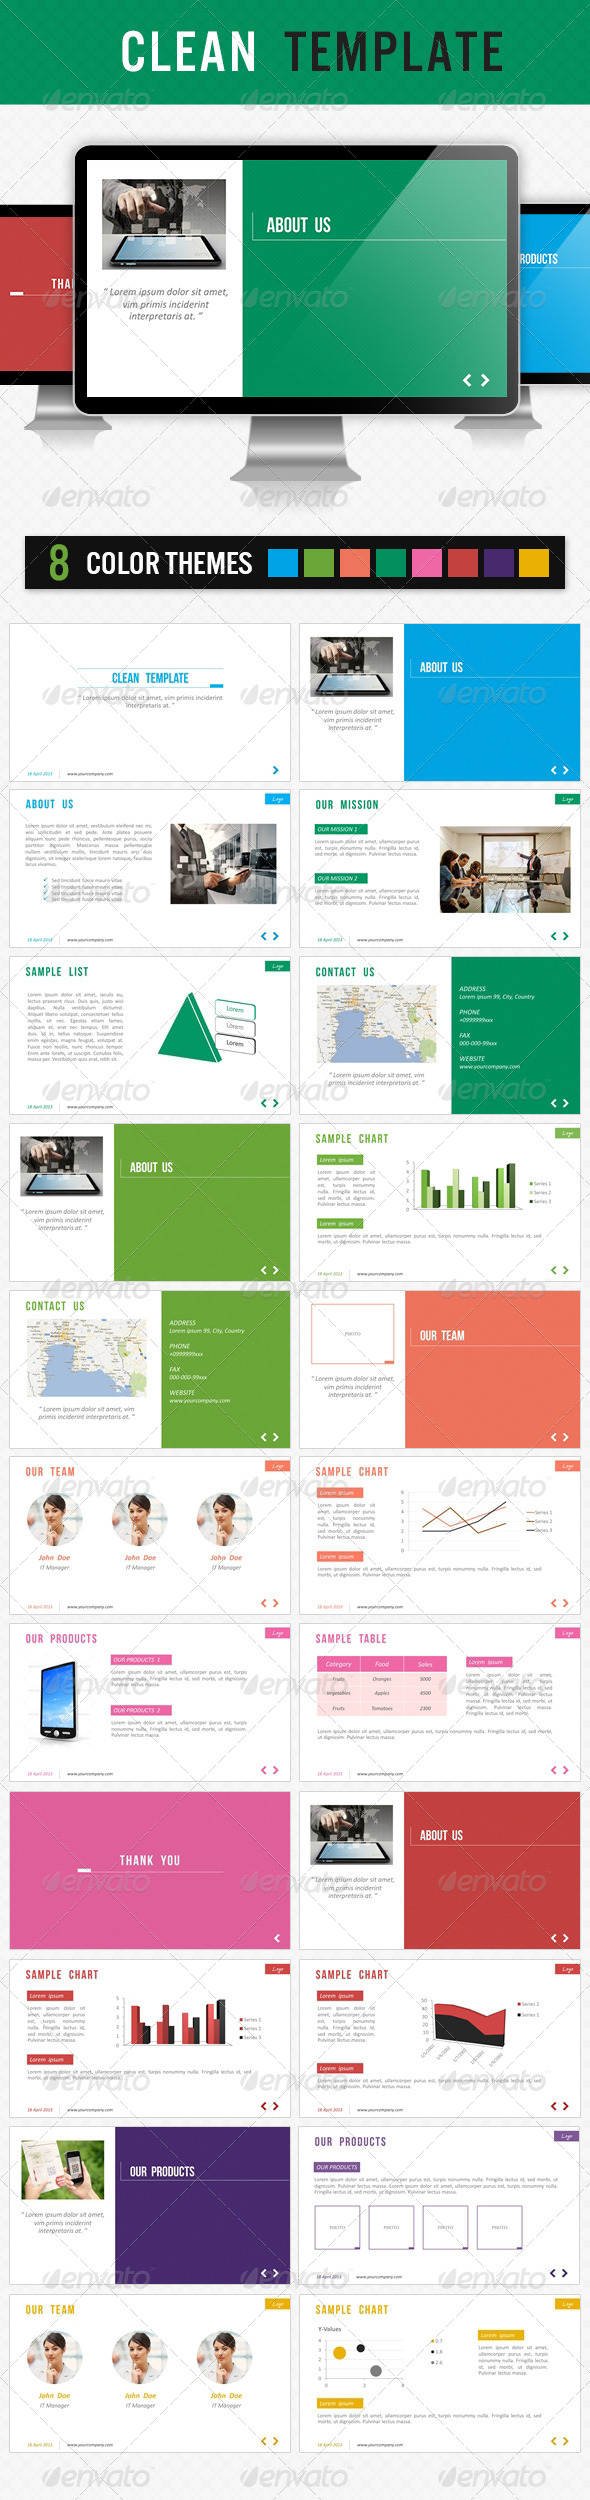 GraphicRiver Clean Template 4556660